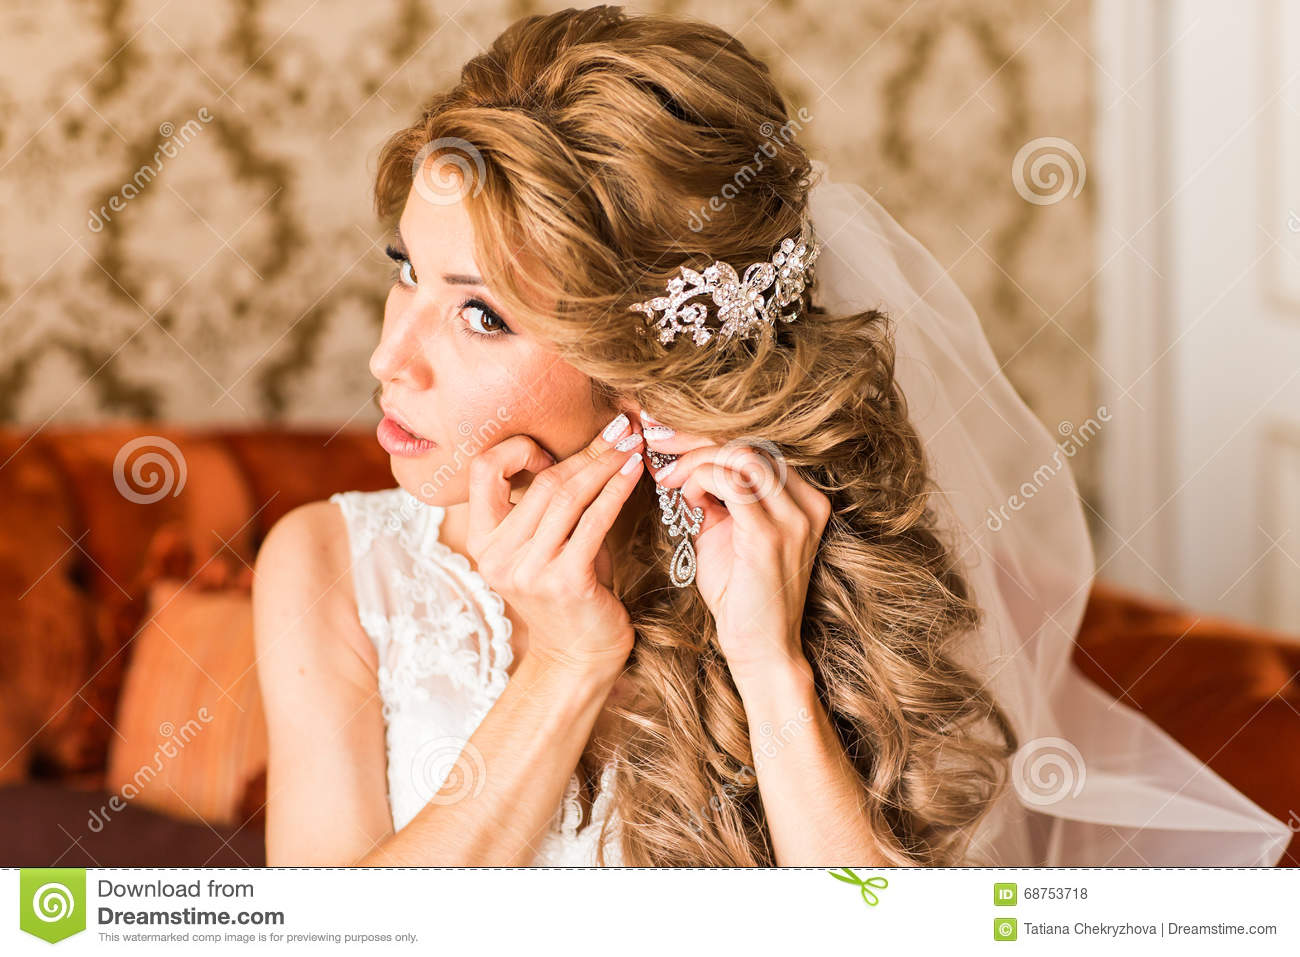 Was specially young beautiful bride preparing